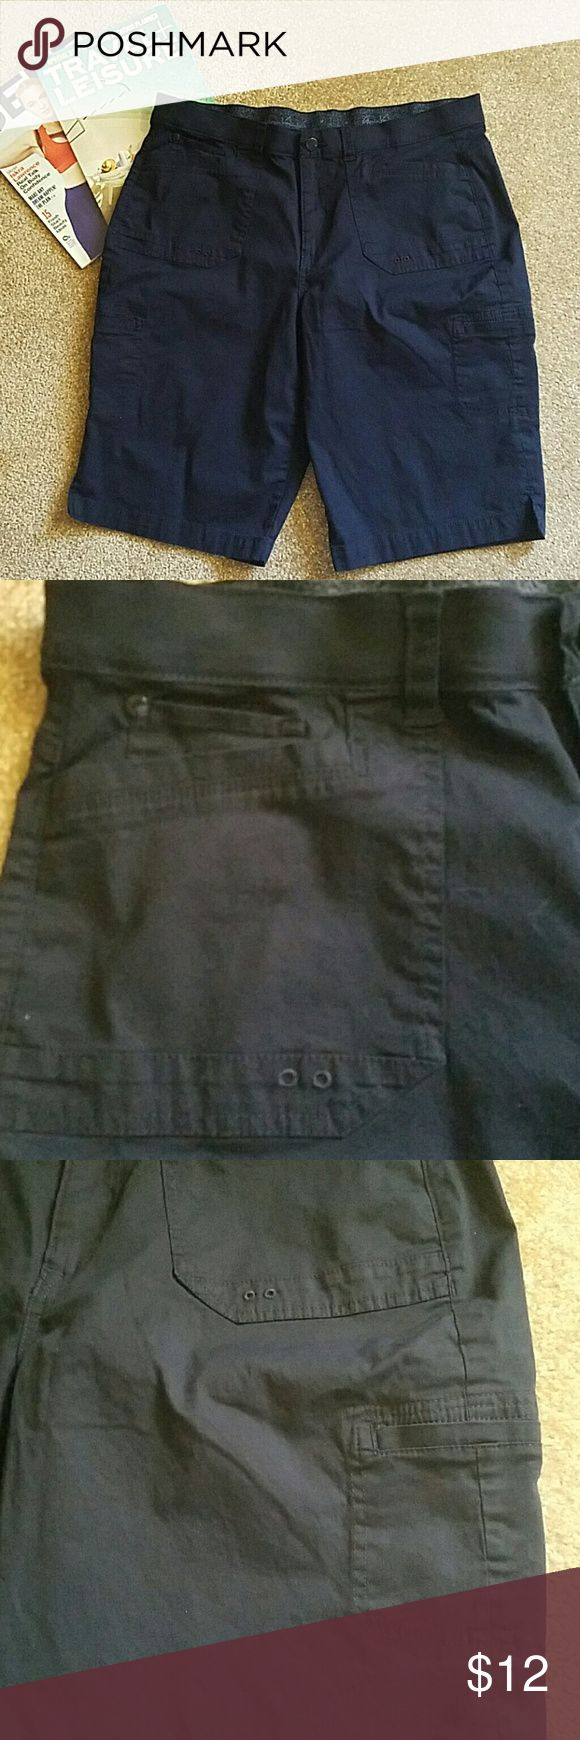 Vanderbilt size 14 navy blue shorts with pockets Waistband measures approximately 35 inches.inseam measures approximately 30 inches  several pockets. Stretchy waistband. Burron and zipper closure.  Great used condition. Gloria Vanderbilt Shorts Cargos